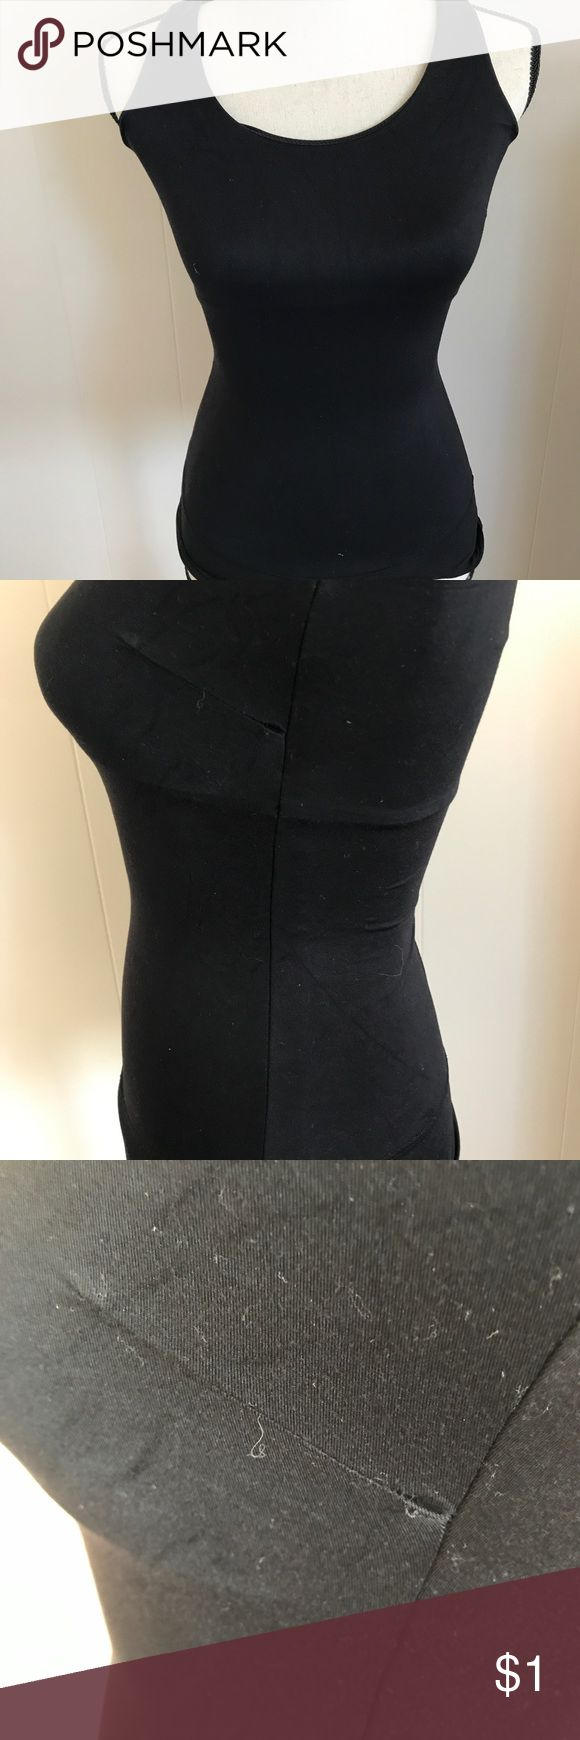 Assets by Spanx tummy tamer Tummy tamer by the Assets by Spanx. Review pics one side seem is coming undone but it's functional just needs minor sewing. Other